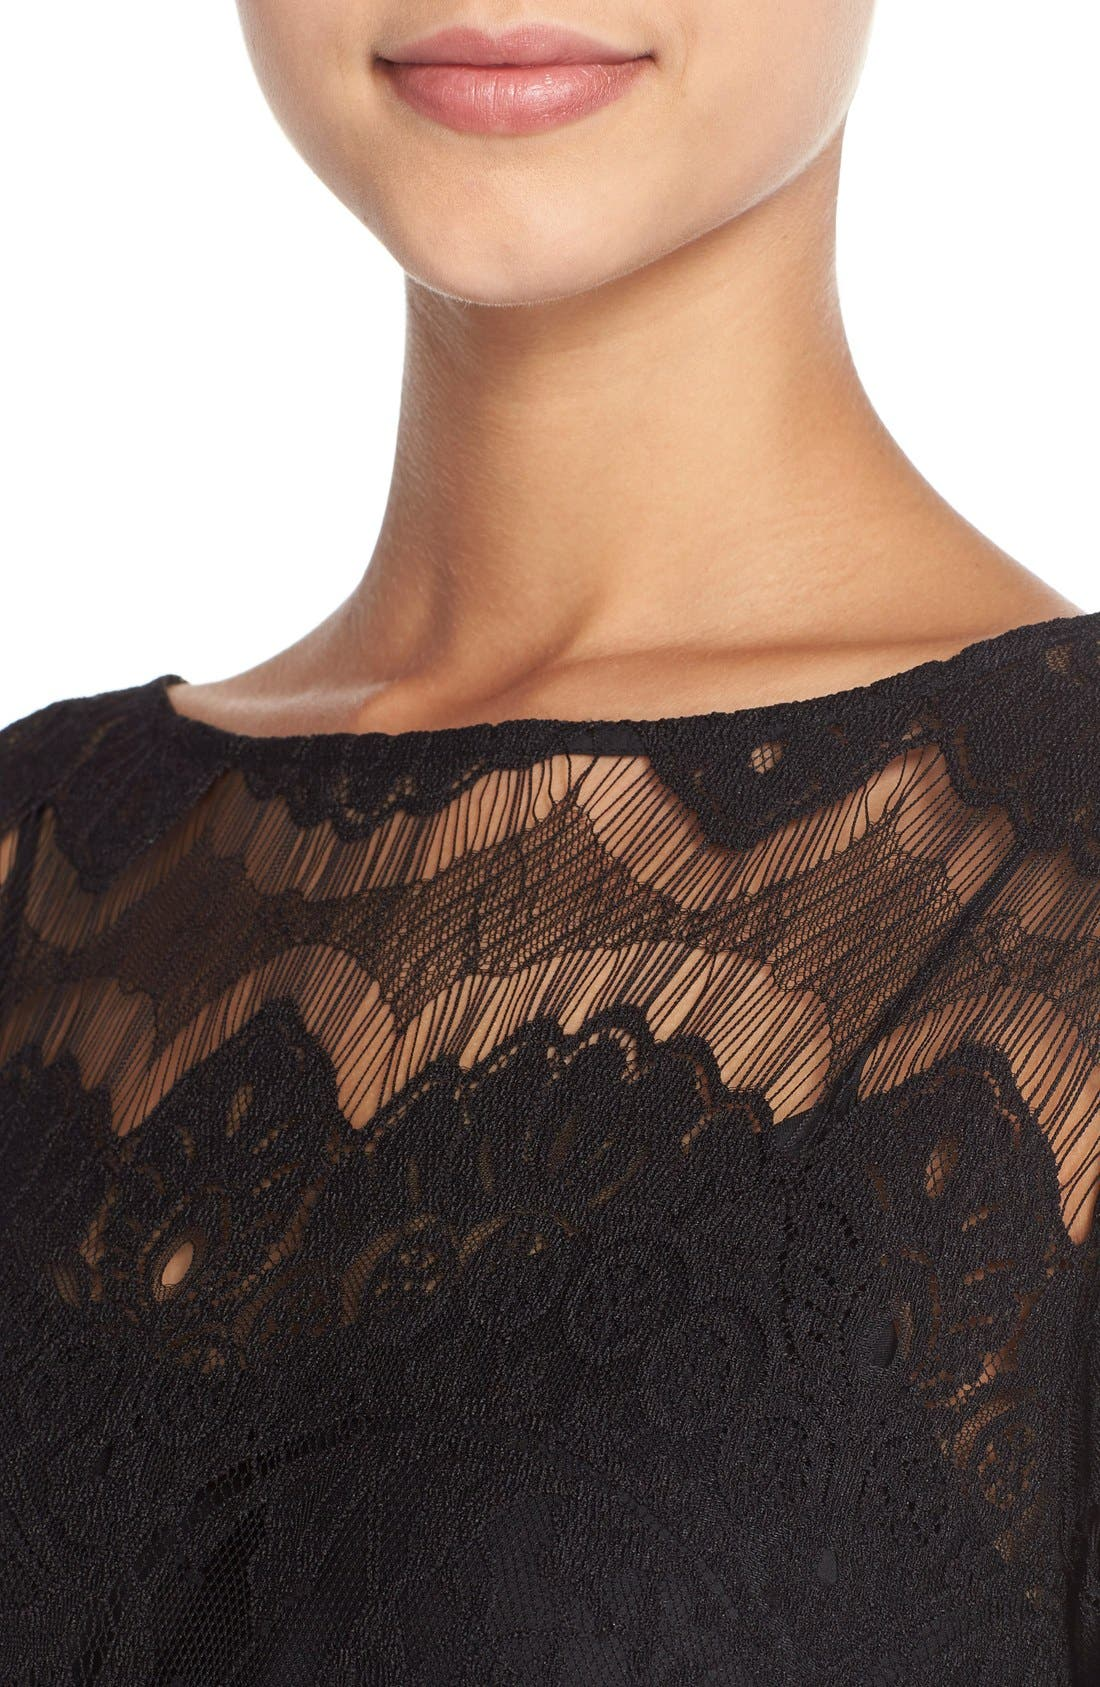 'Natalia' Lace Sheath Dress,                             Alternate thumbnail 2, color,                             001